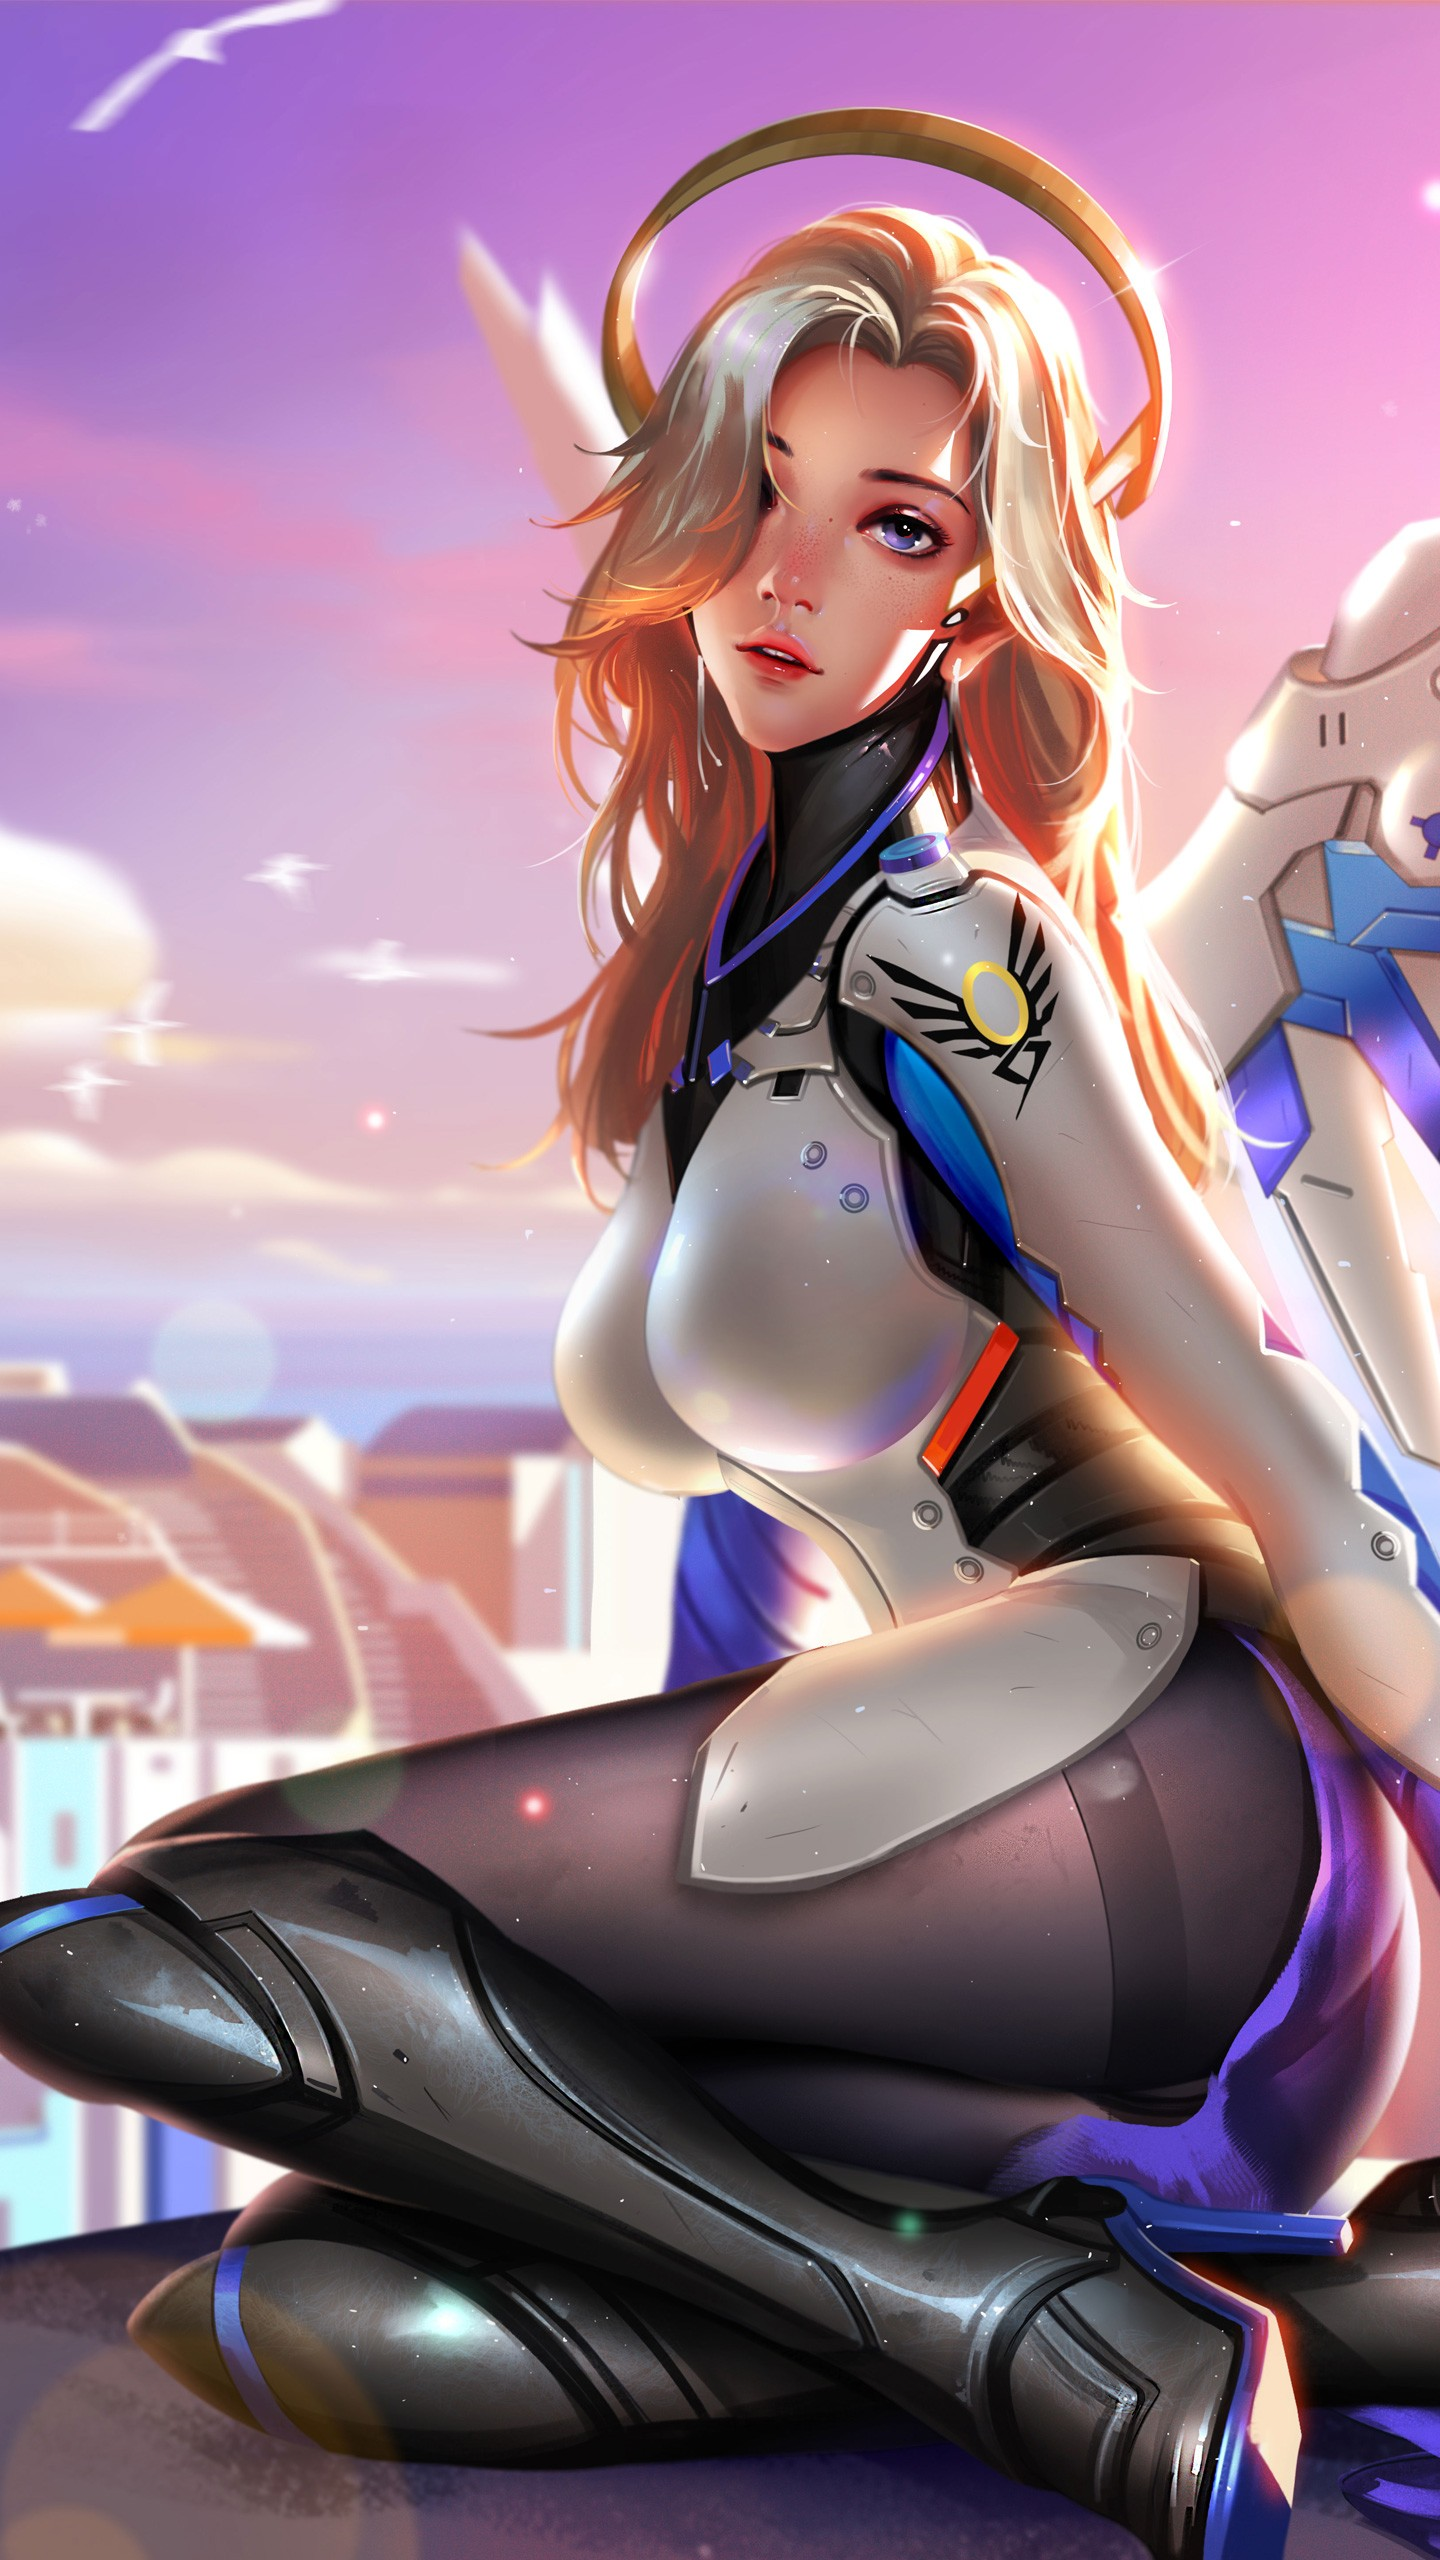 Windows Anime Girls Wallpapers Mercy Overwatch Artwork 4k 8k Wallpapers Hd Wallpapers